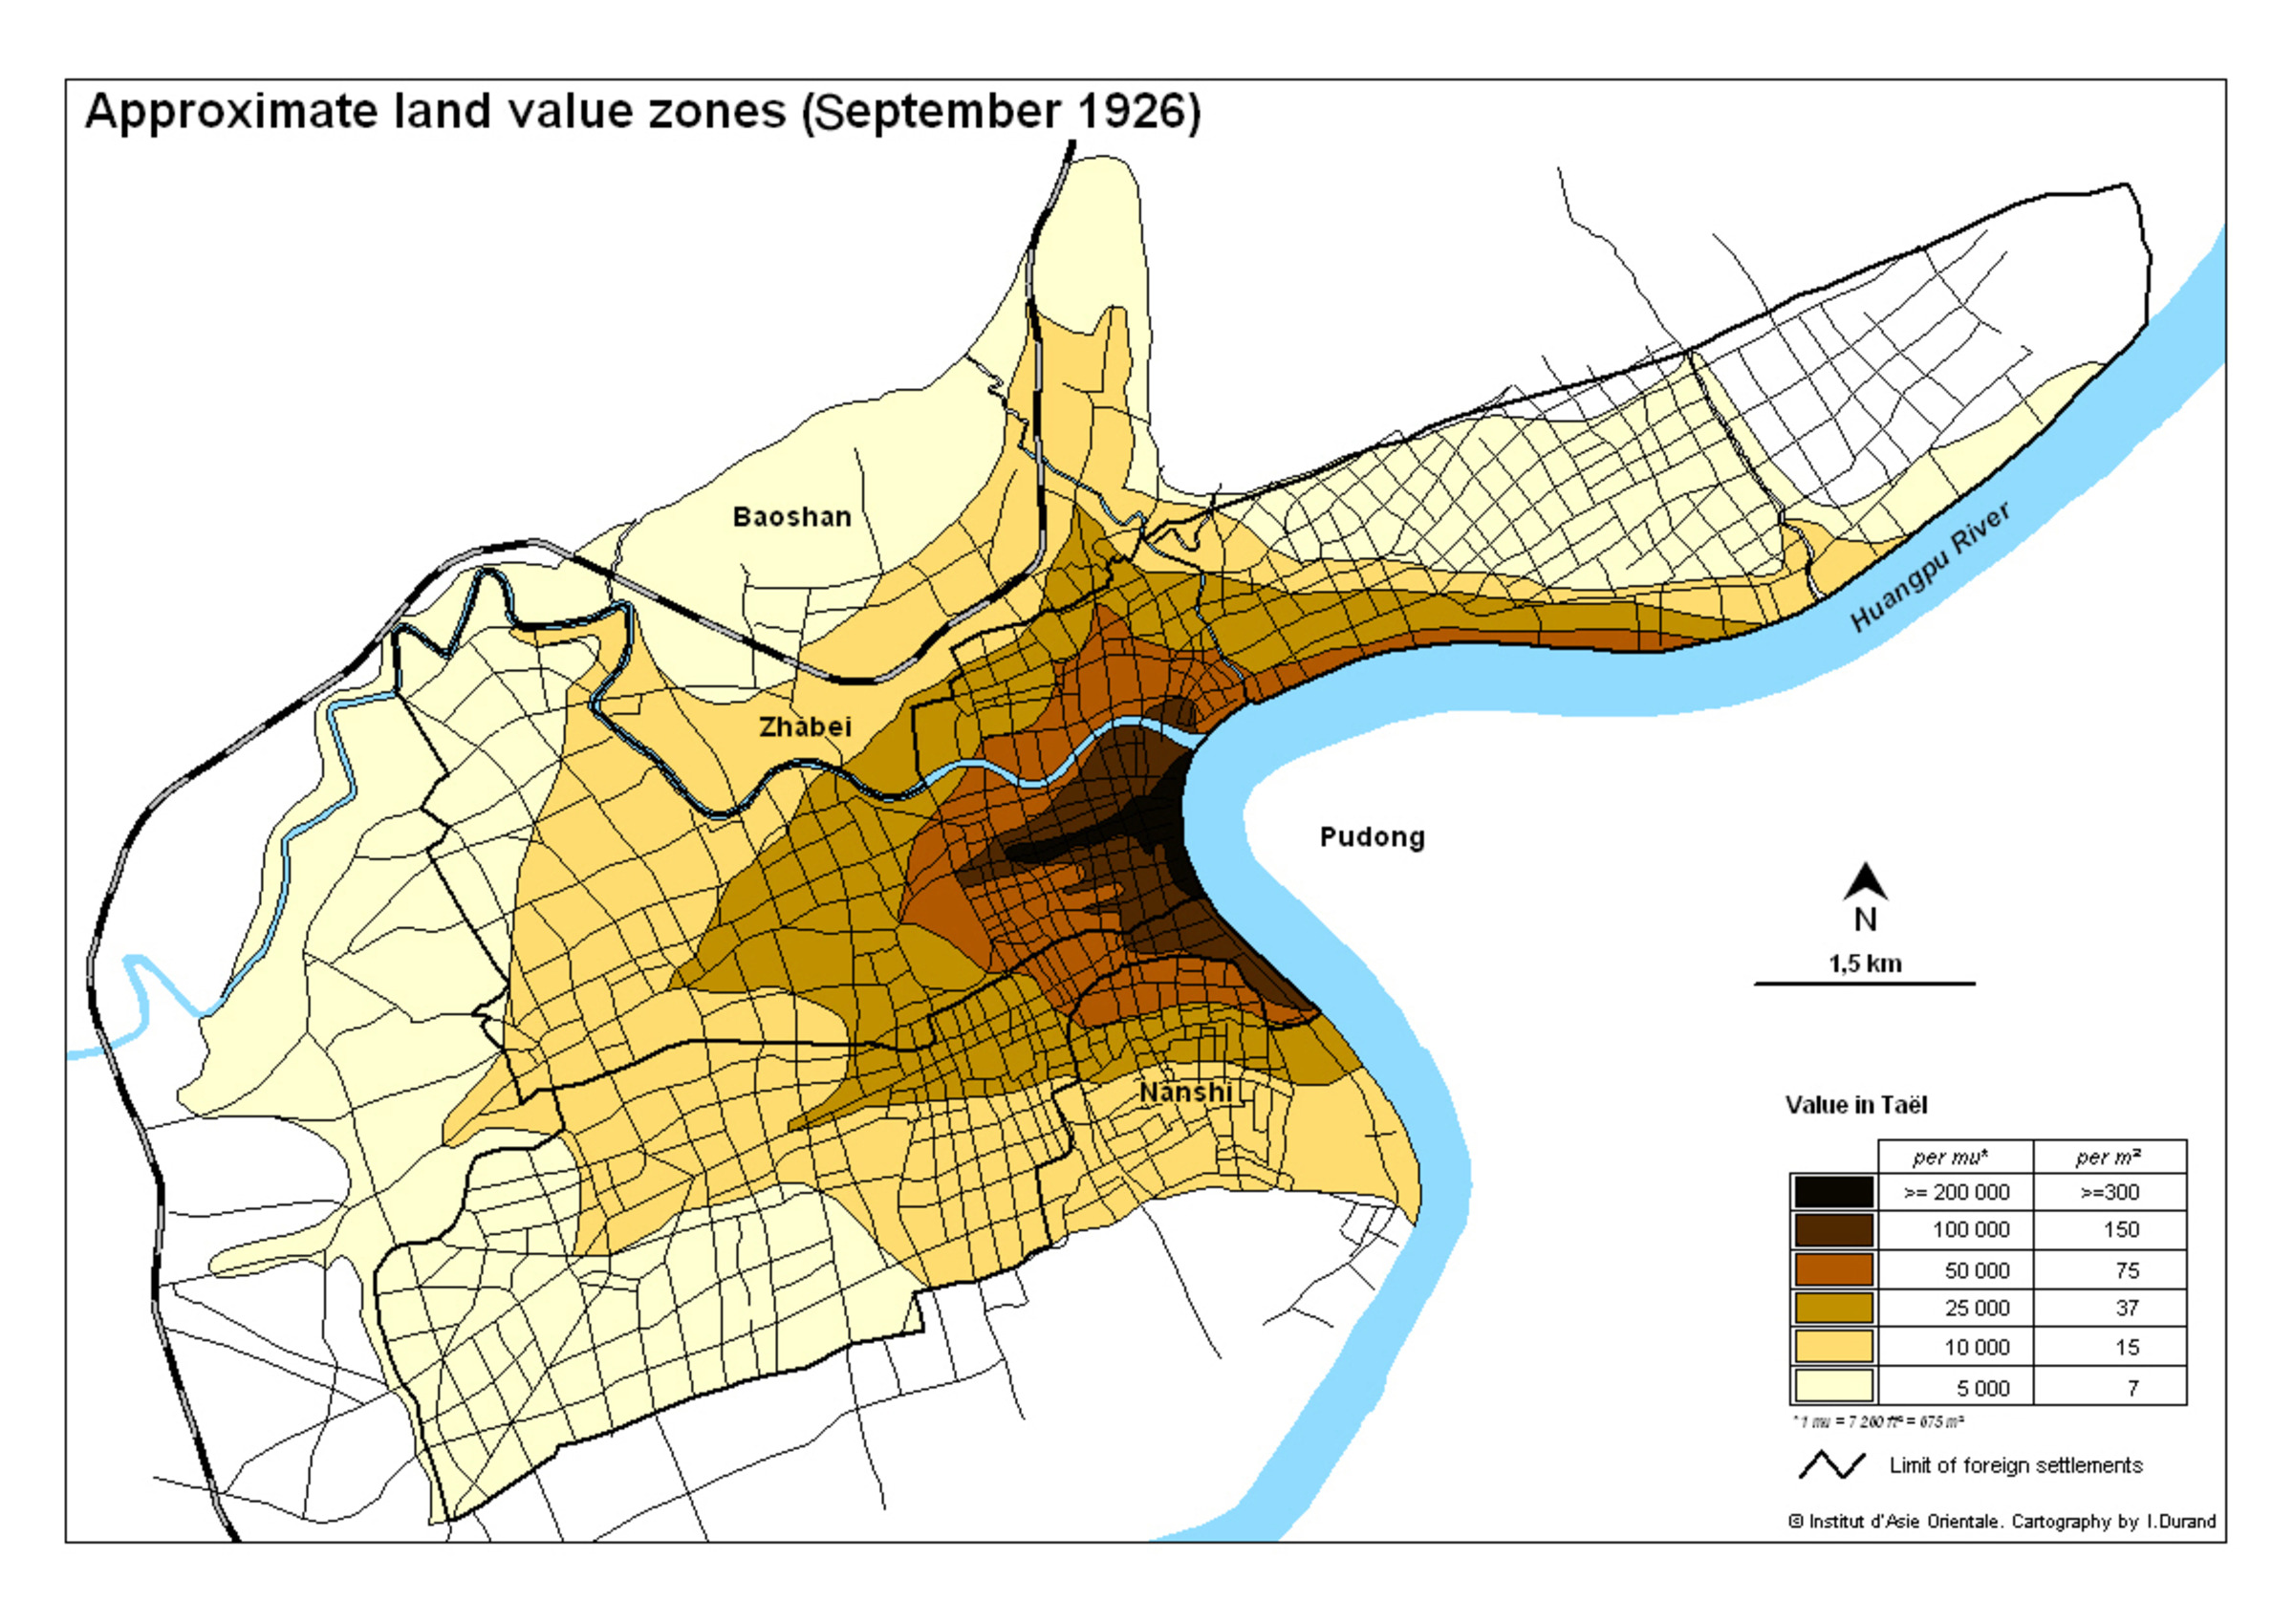 Land Value Map Approximate land value zones | Virtual Shanghai Land Value Map